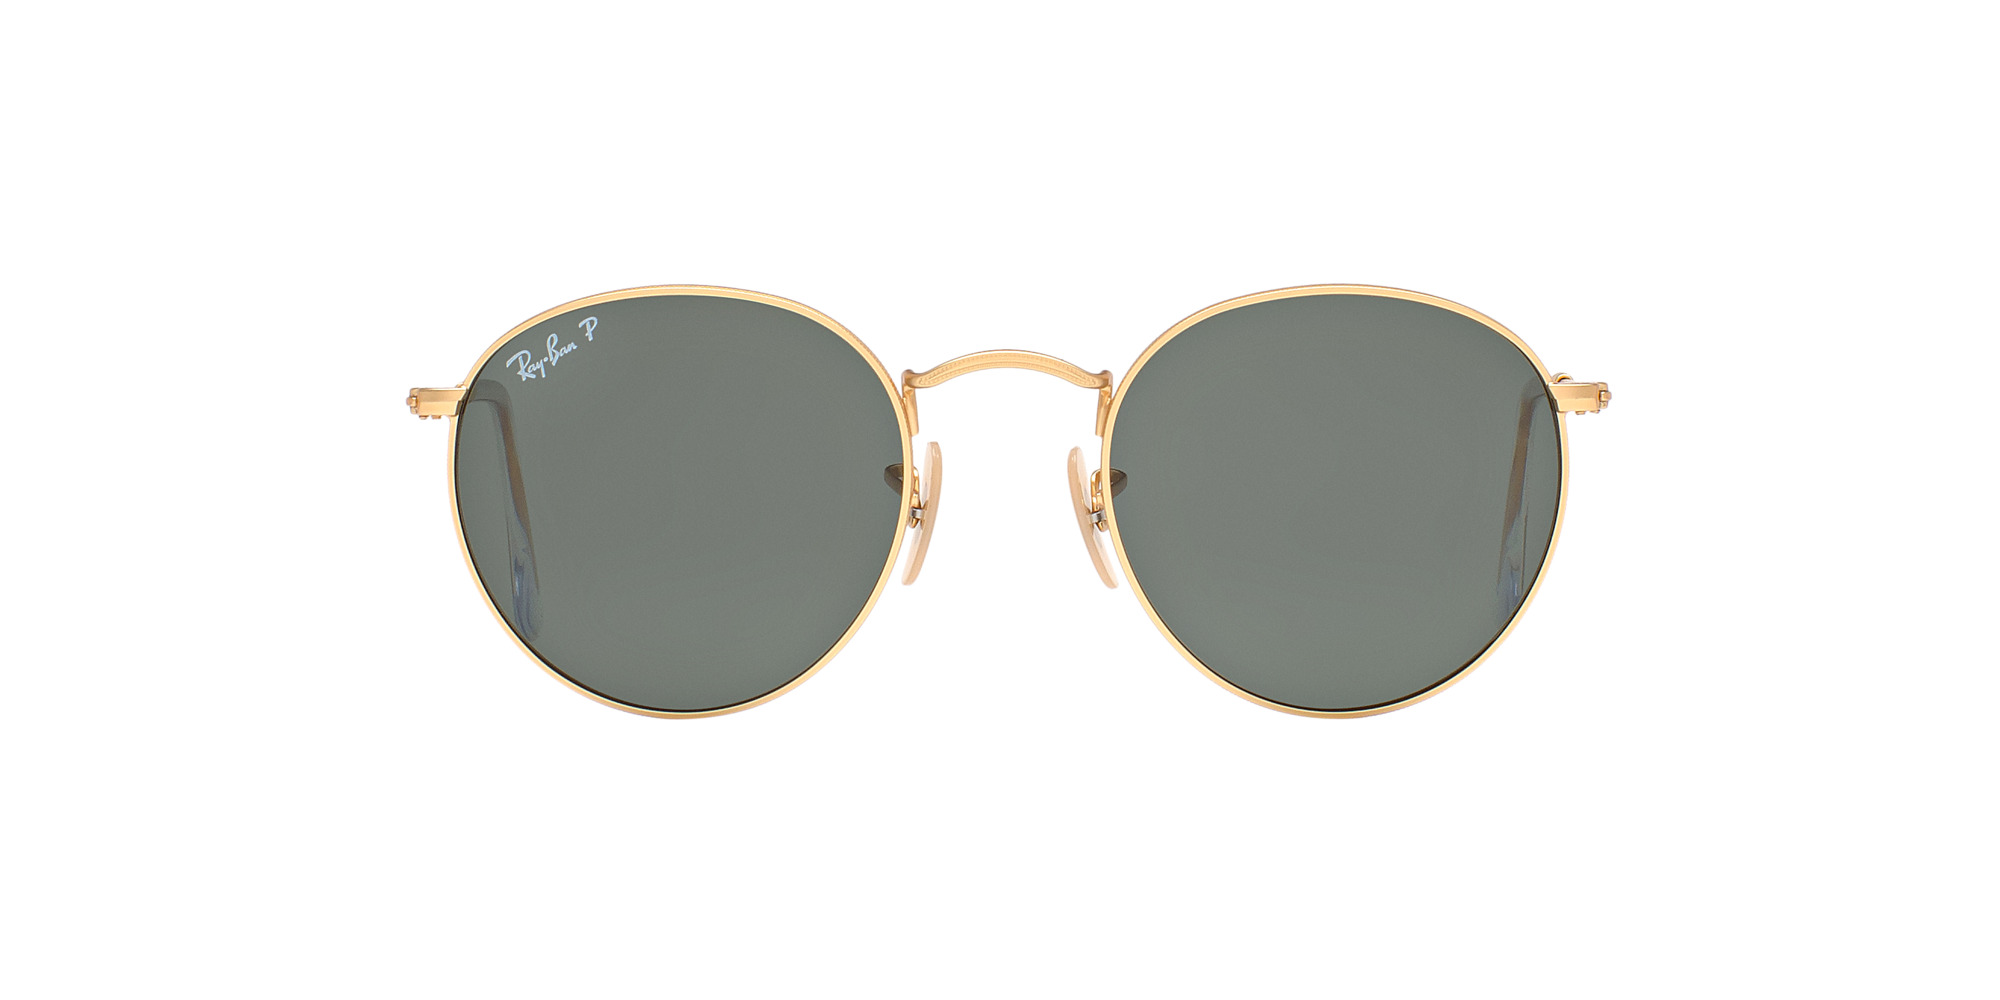 RAY-BAN ROUND METAL RB 3447 112/58 POLARIZADAS-360